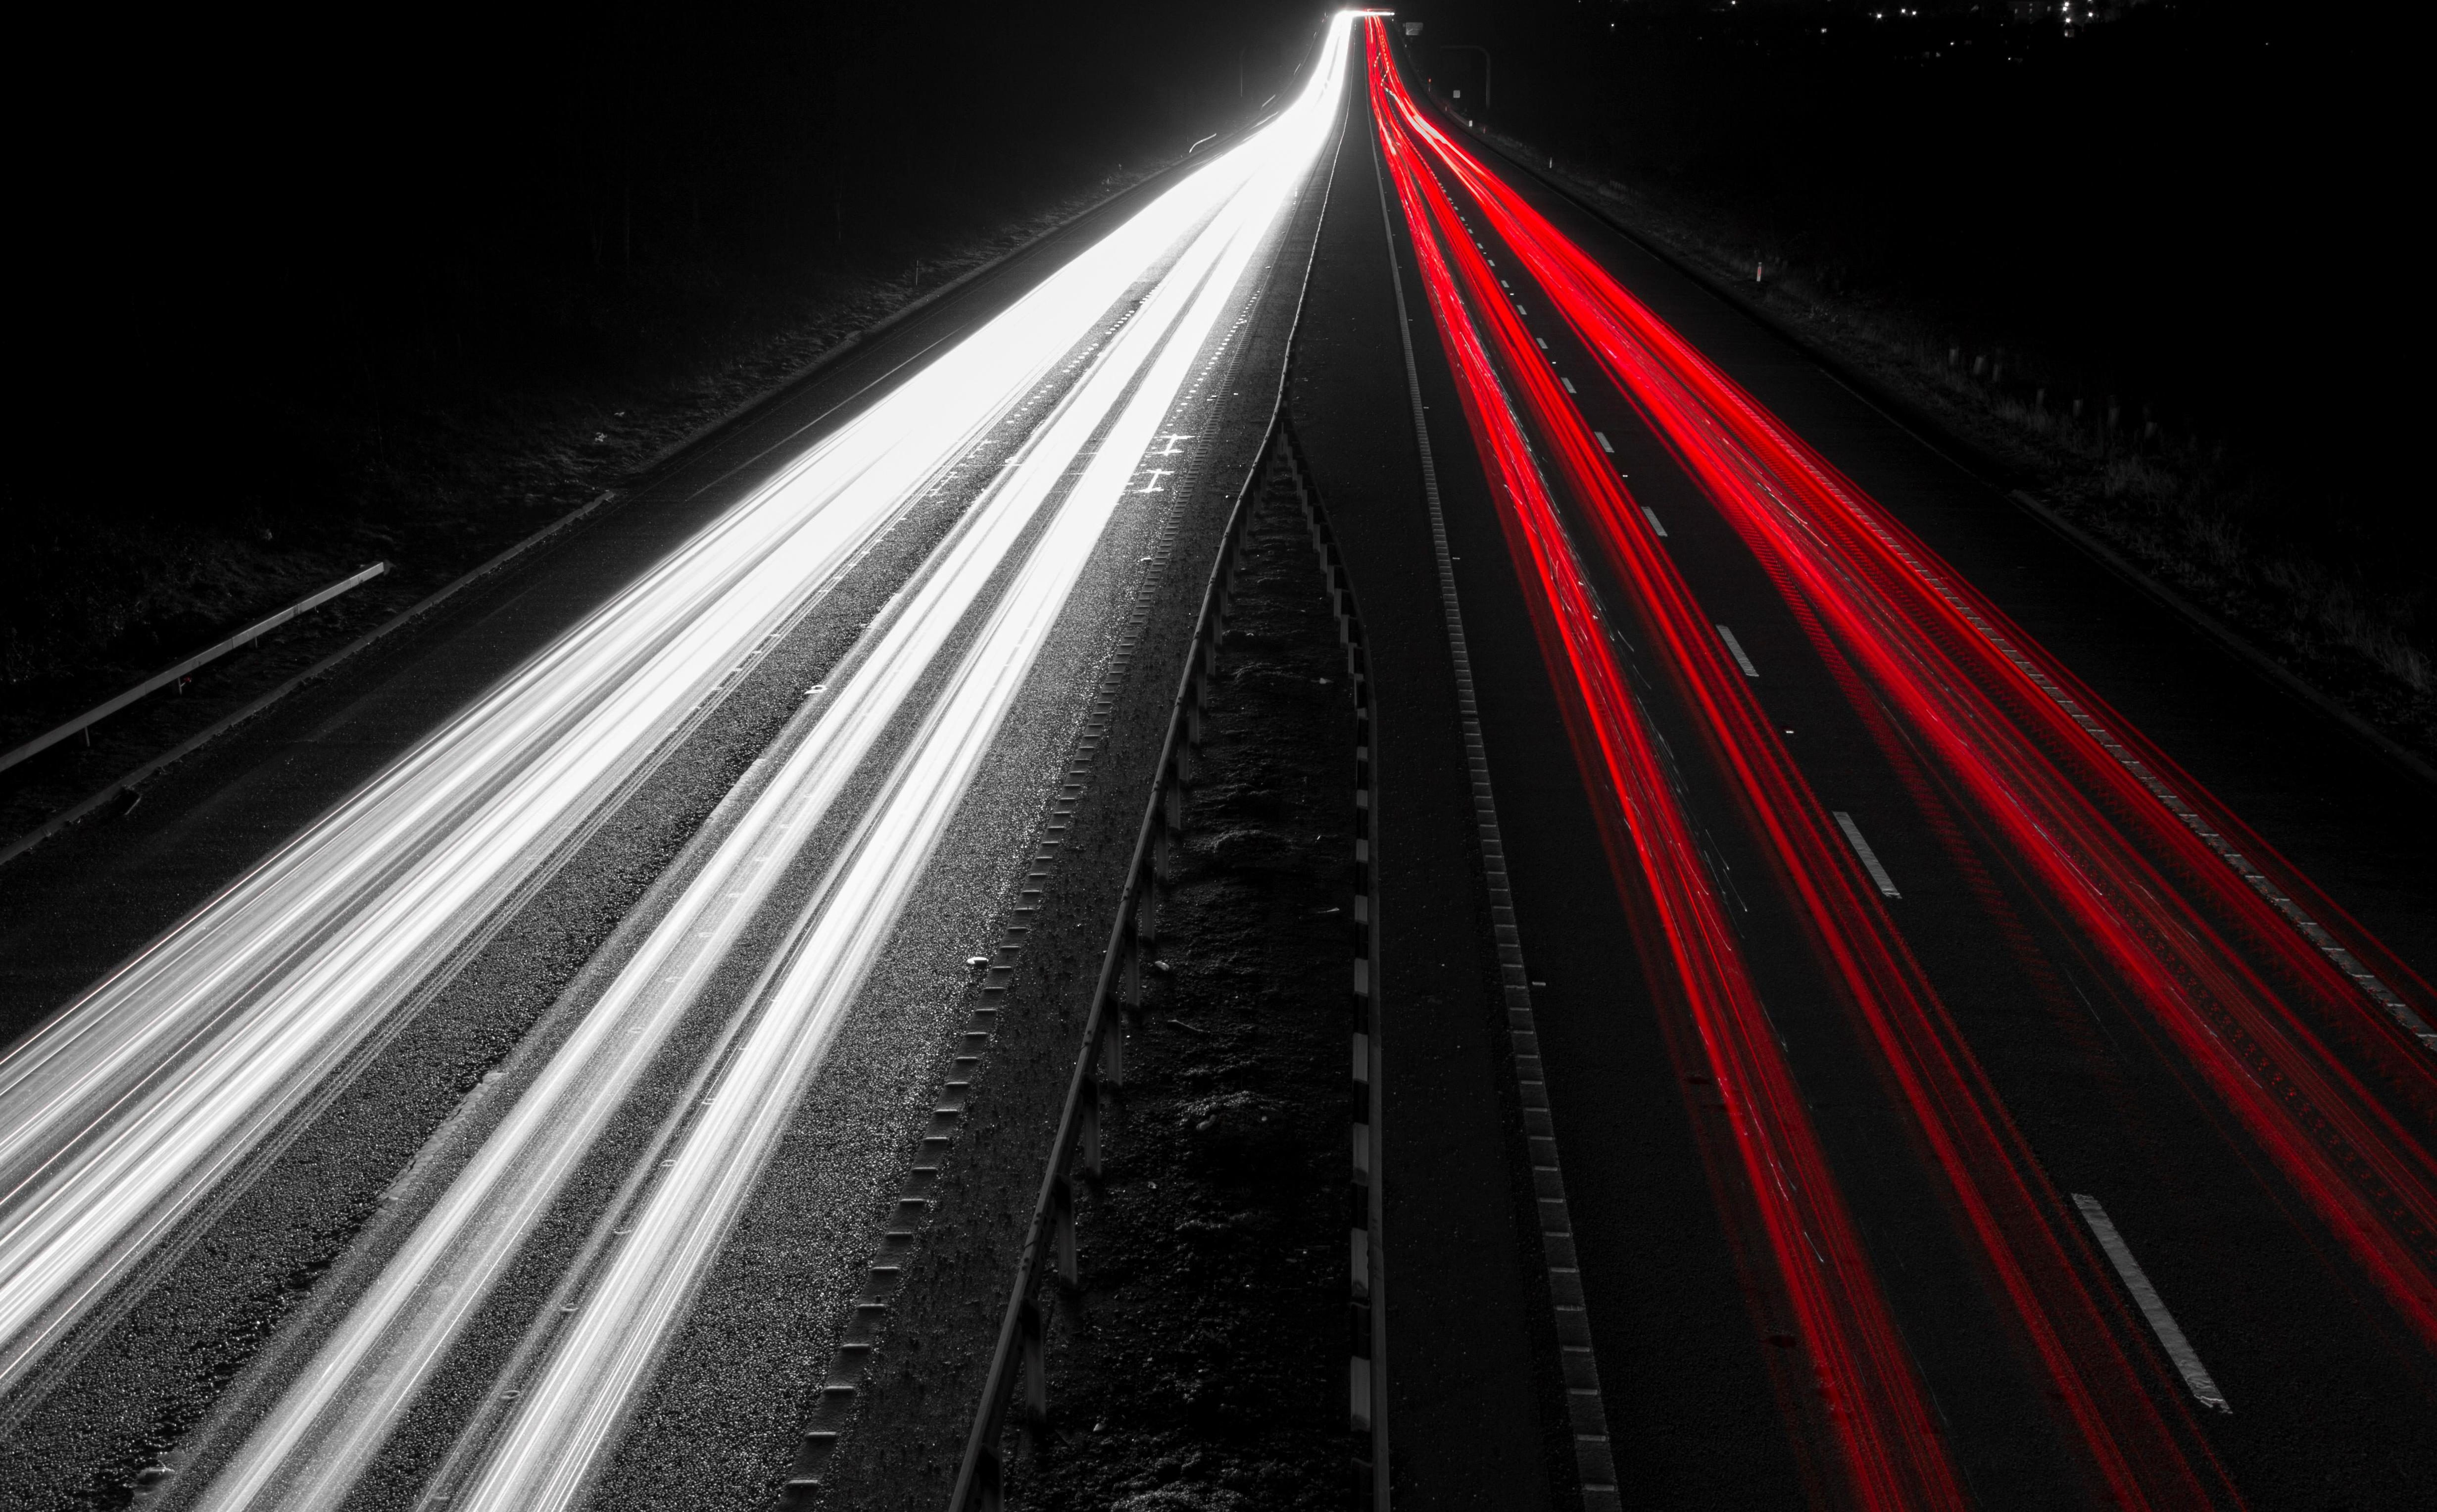 Hd Car Background Wallpaper Free Picture Abstract Lights Night Road Traffic